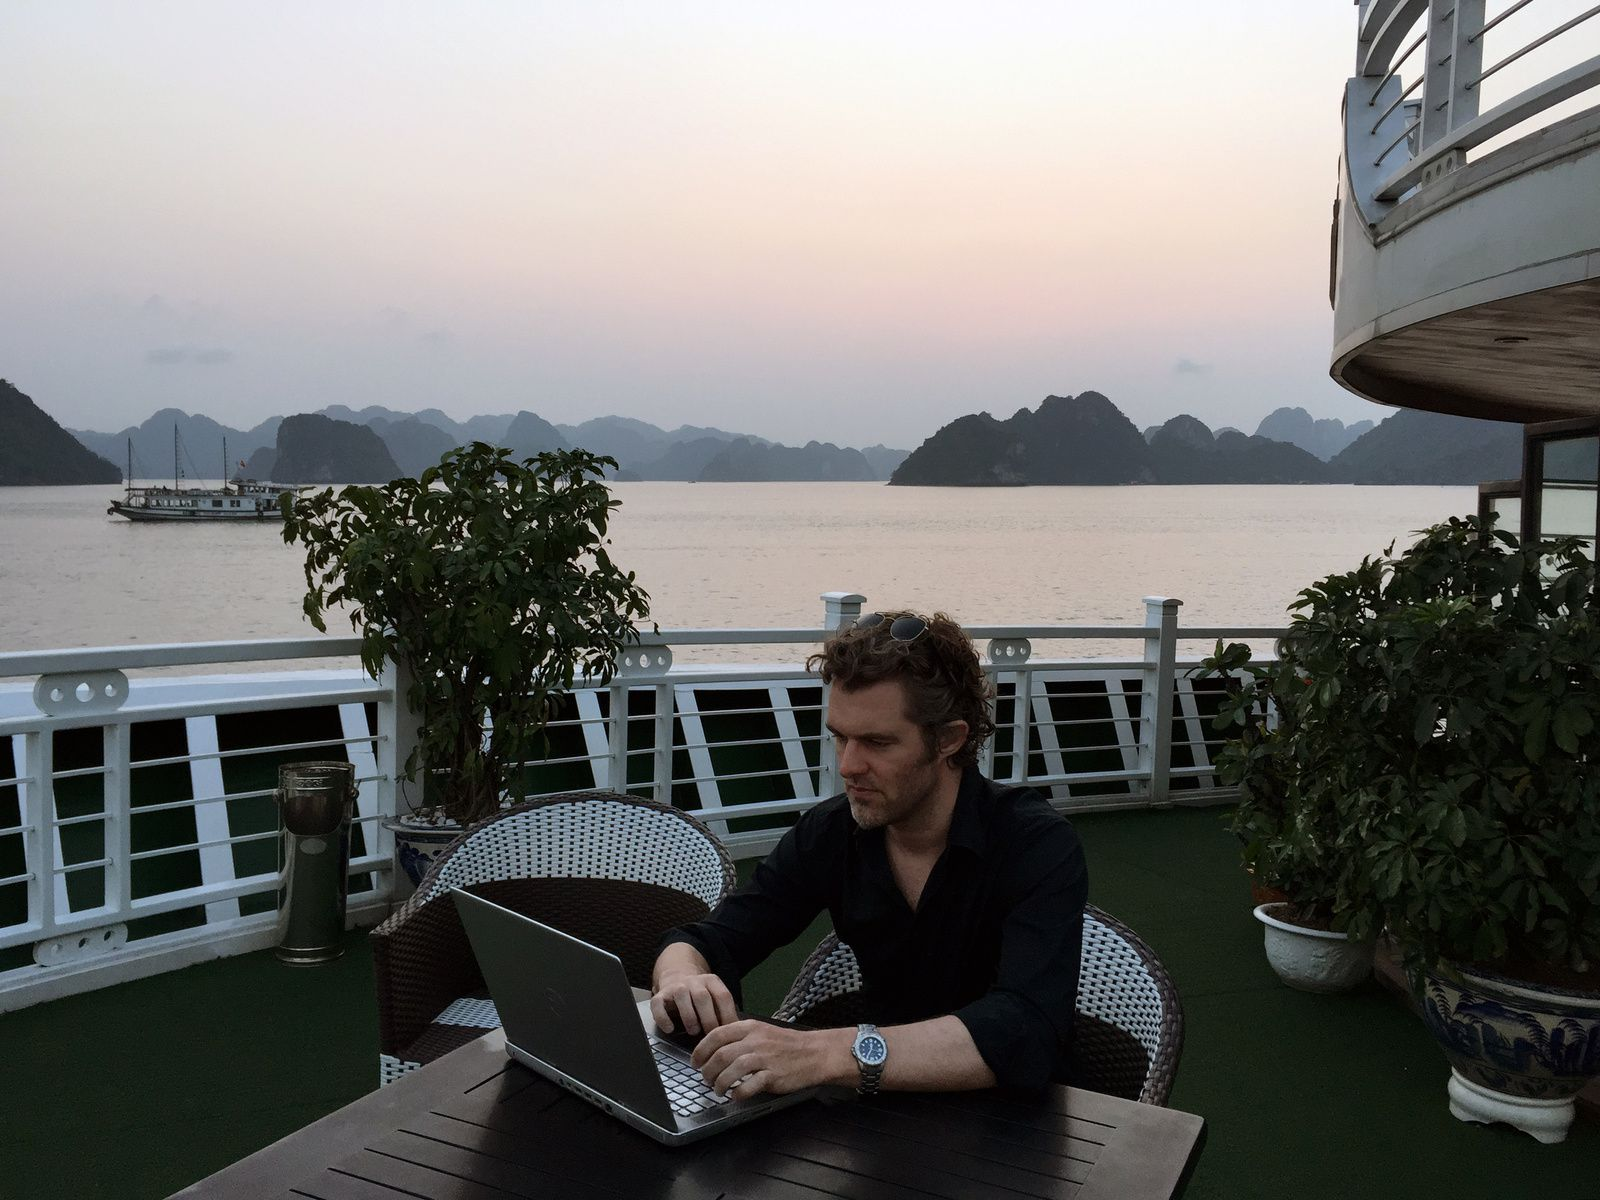 Olivier, pretending to work without paying attention to the Ha Long Bay.